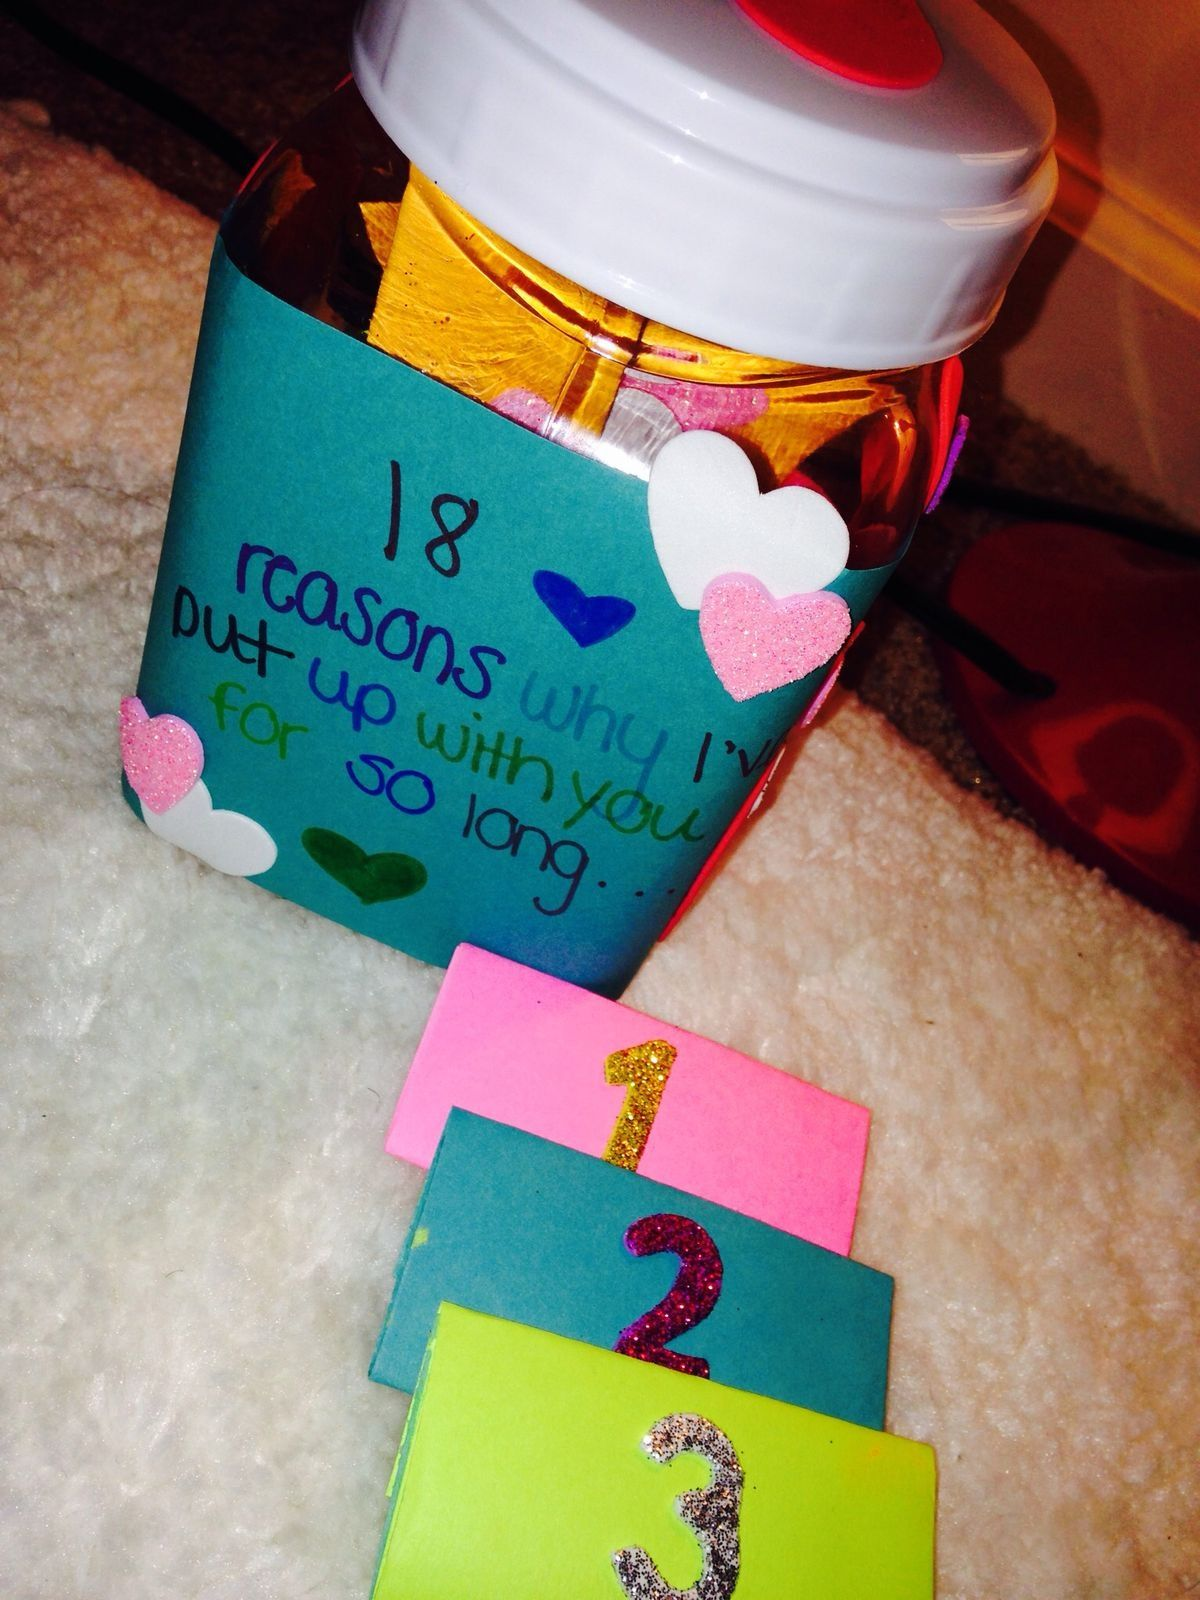 Doing this for my boyfriends 19th birthday, but with 19